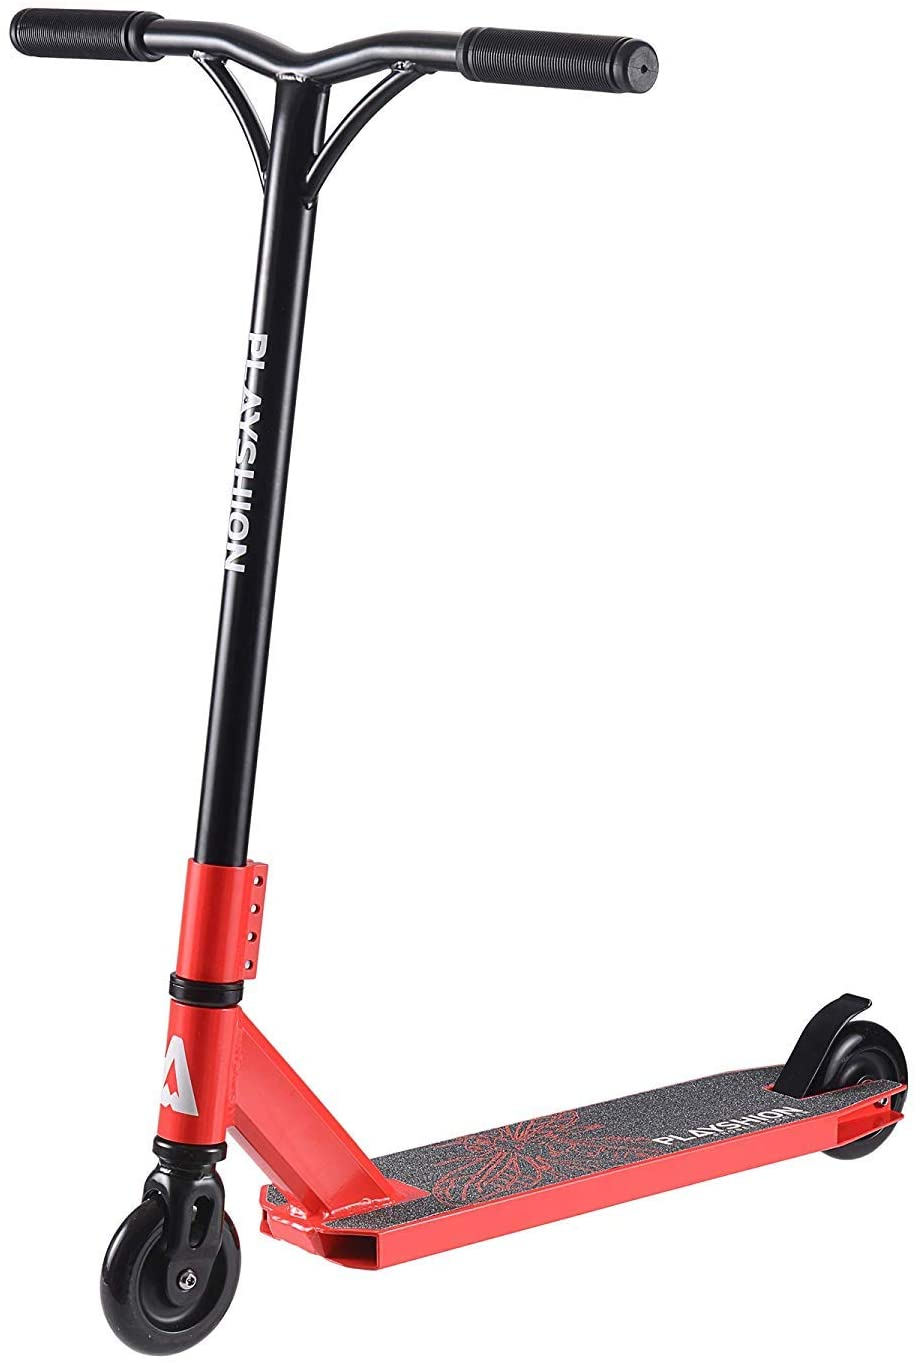 Playshion Pro Stunt Scooters